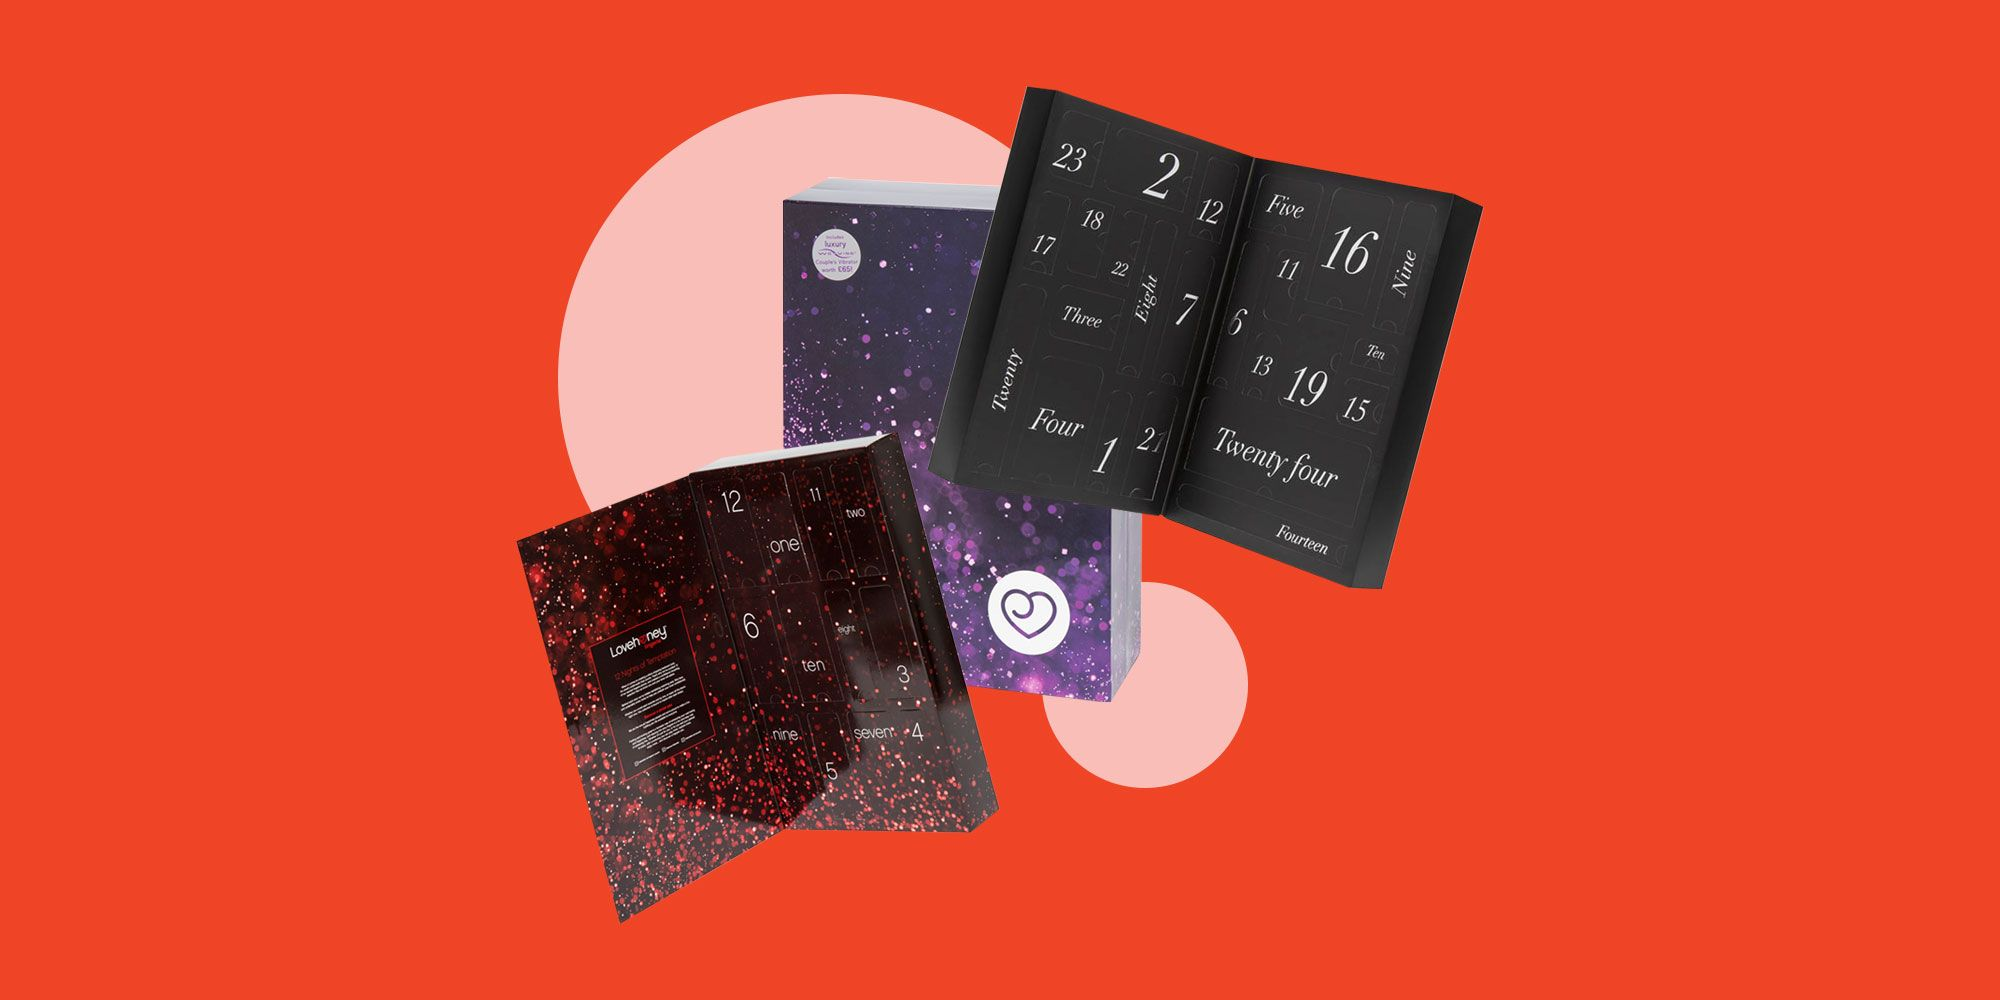 7 Sex Toy Advent Calendars to End 2019 With 24 Bangs